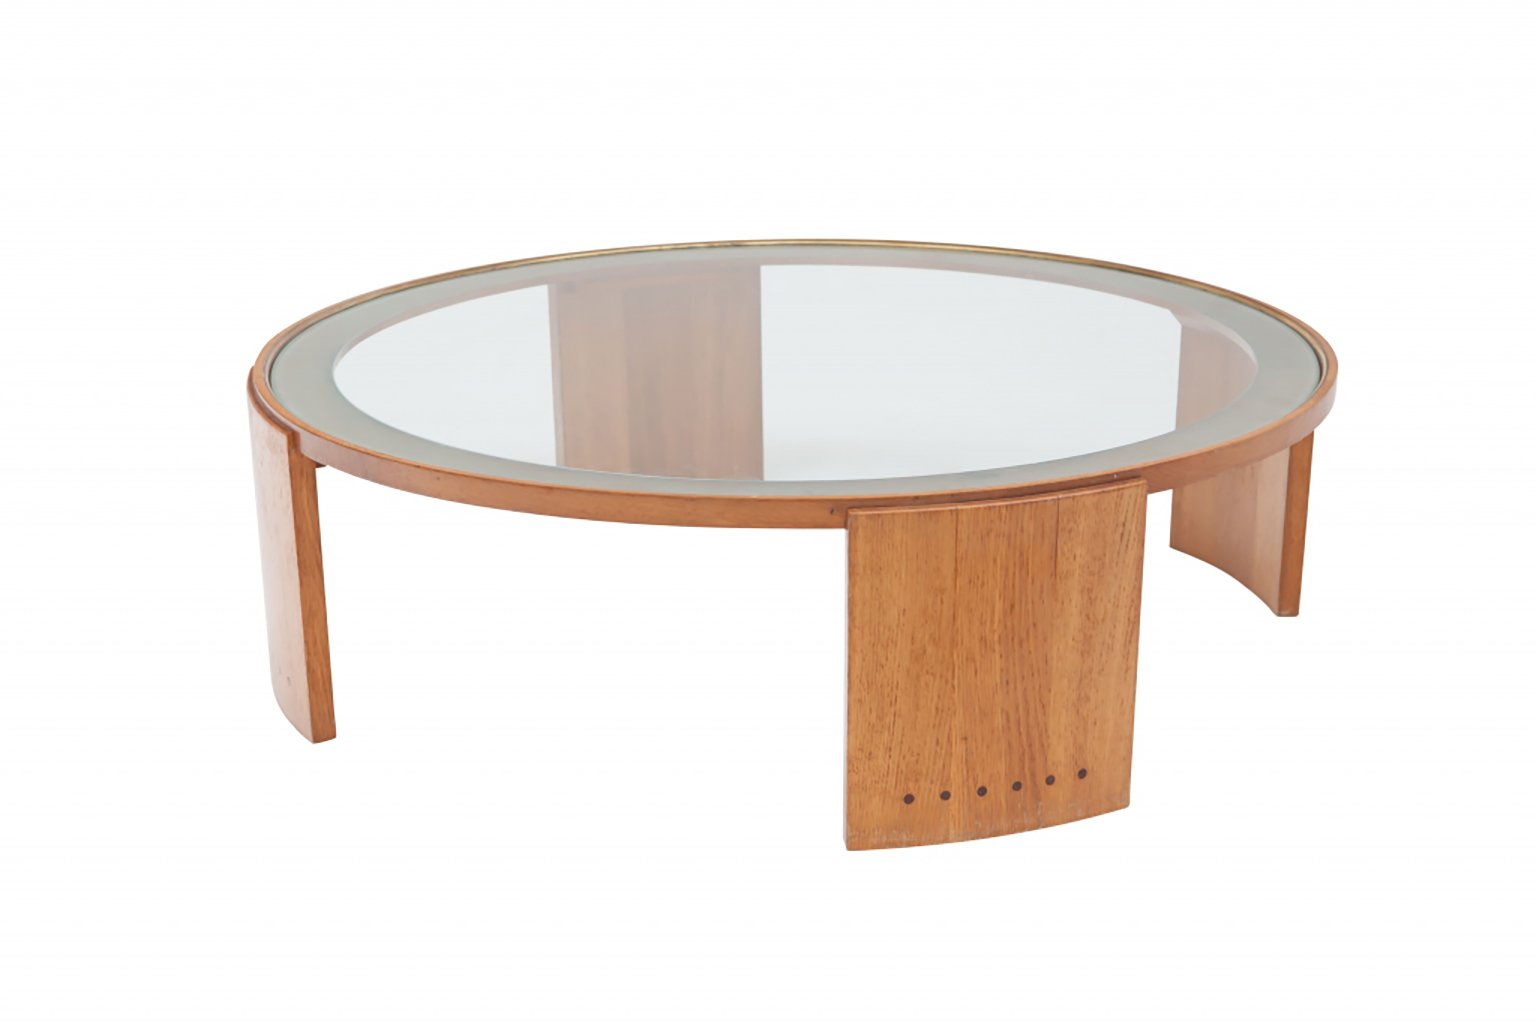 coffee table by pierre chapo 1960s for sale at pamono. Black Bedroom Furniture Sets. Home Design Ideas